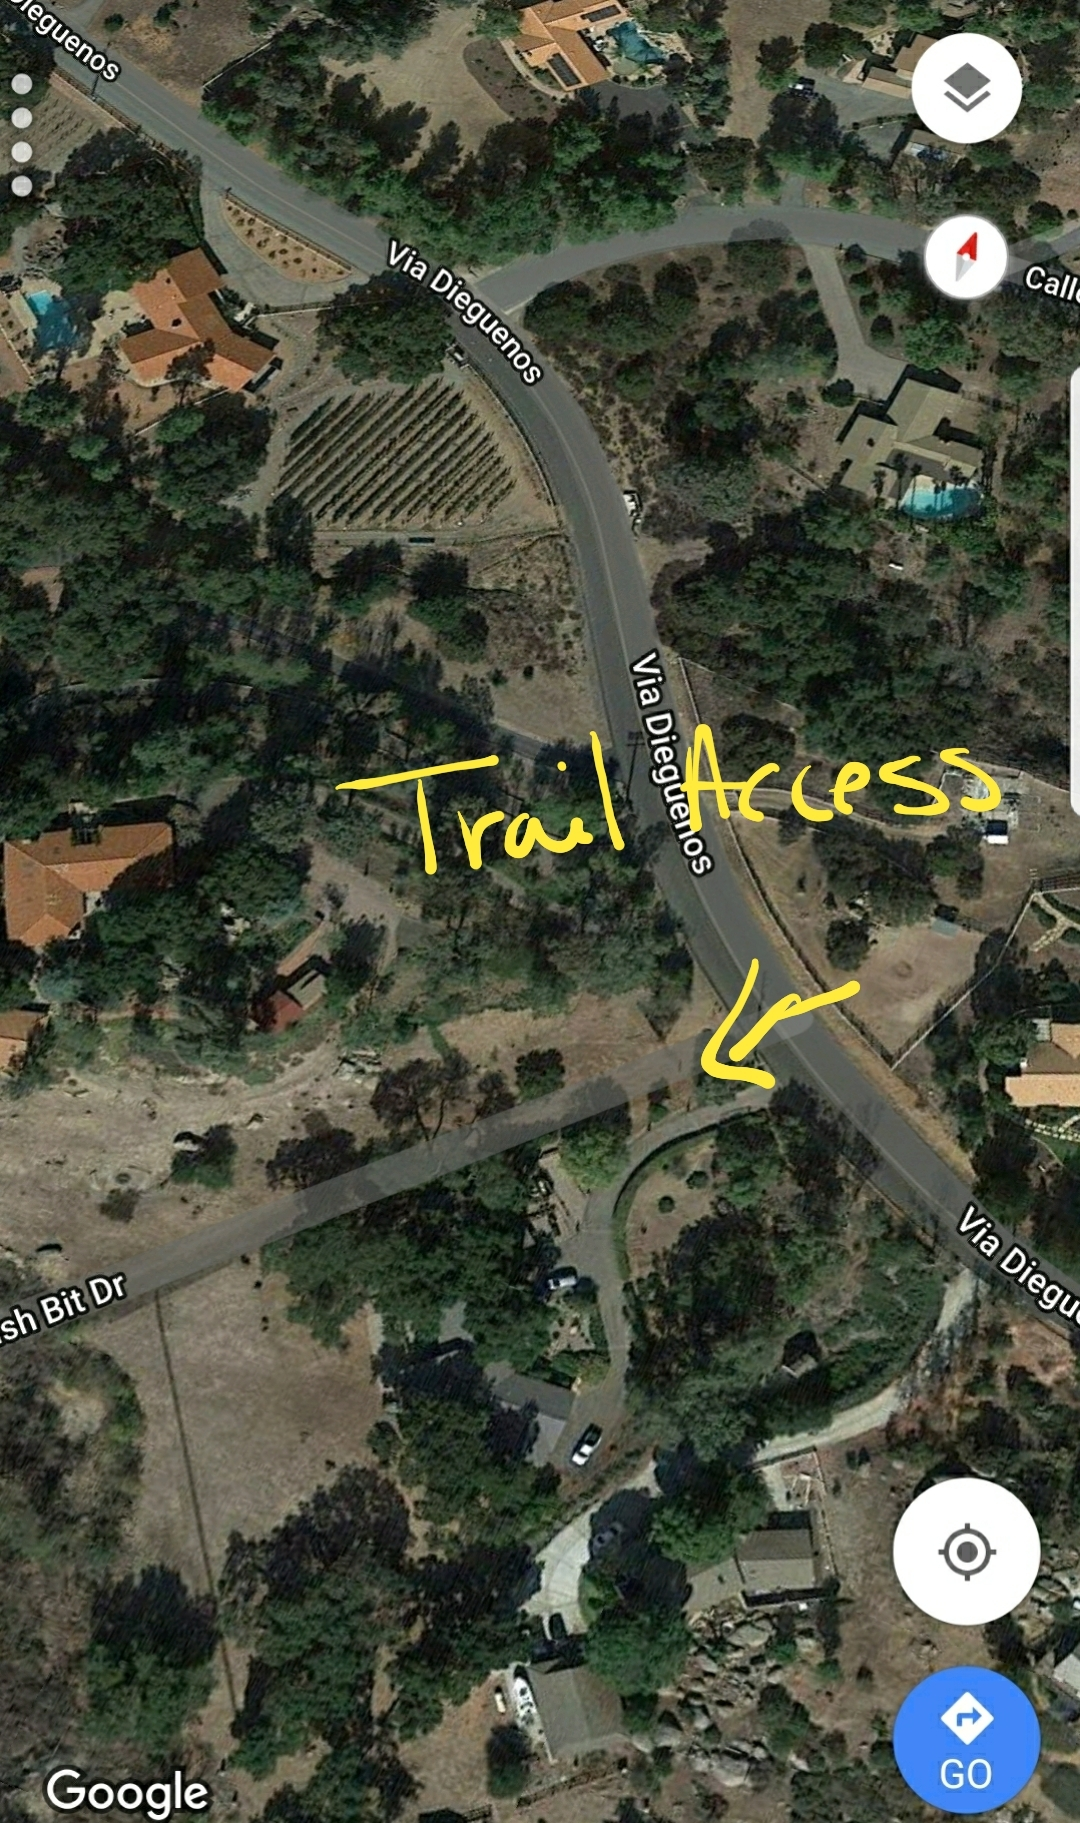 Access to California Riding and Hiking Trail